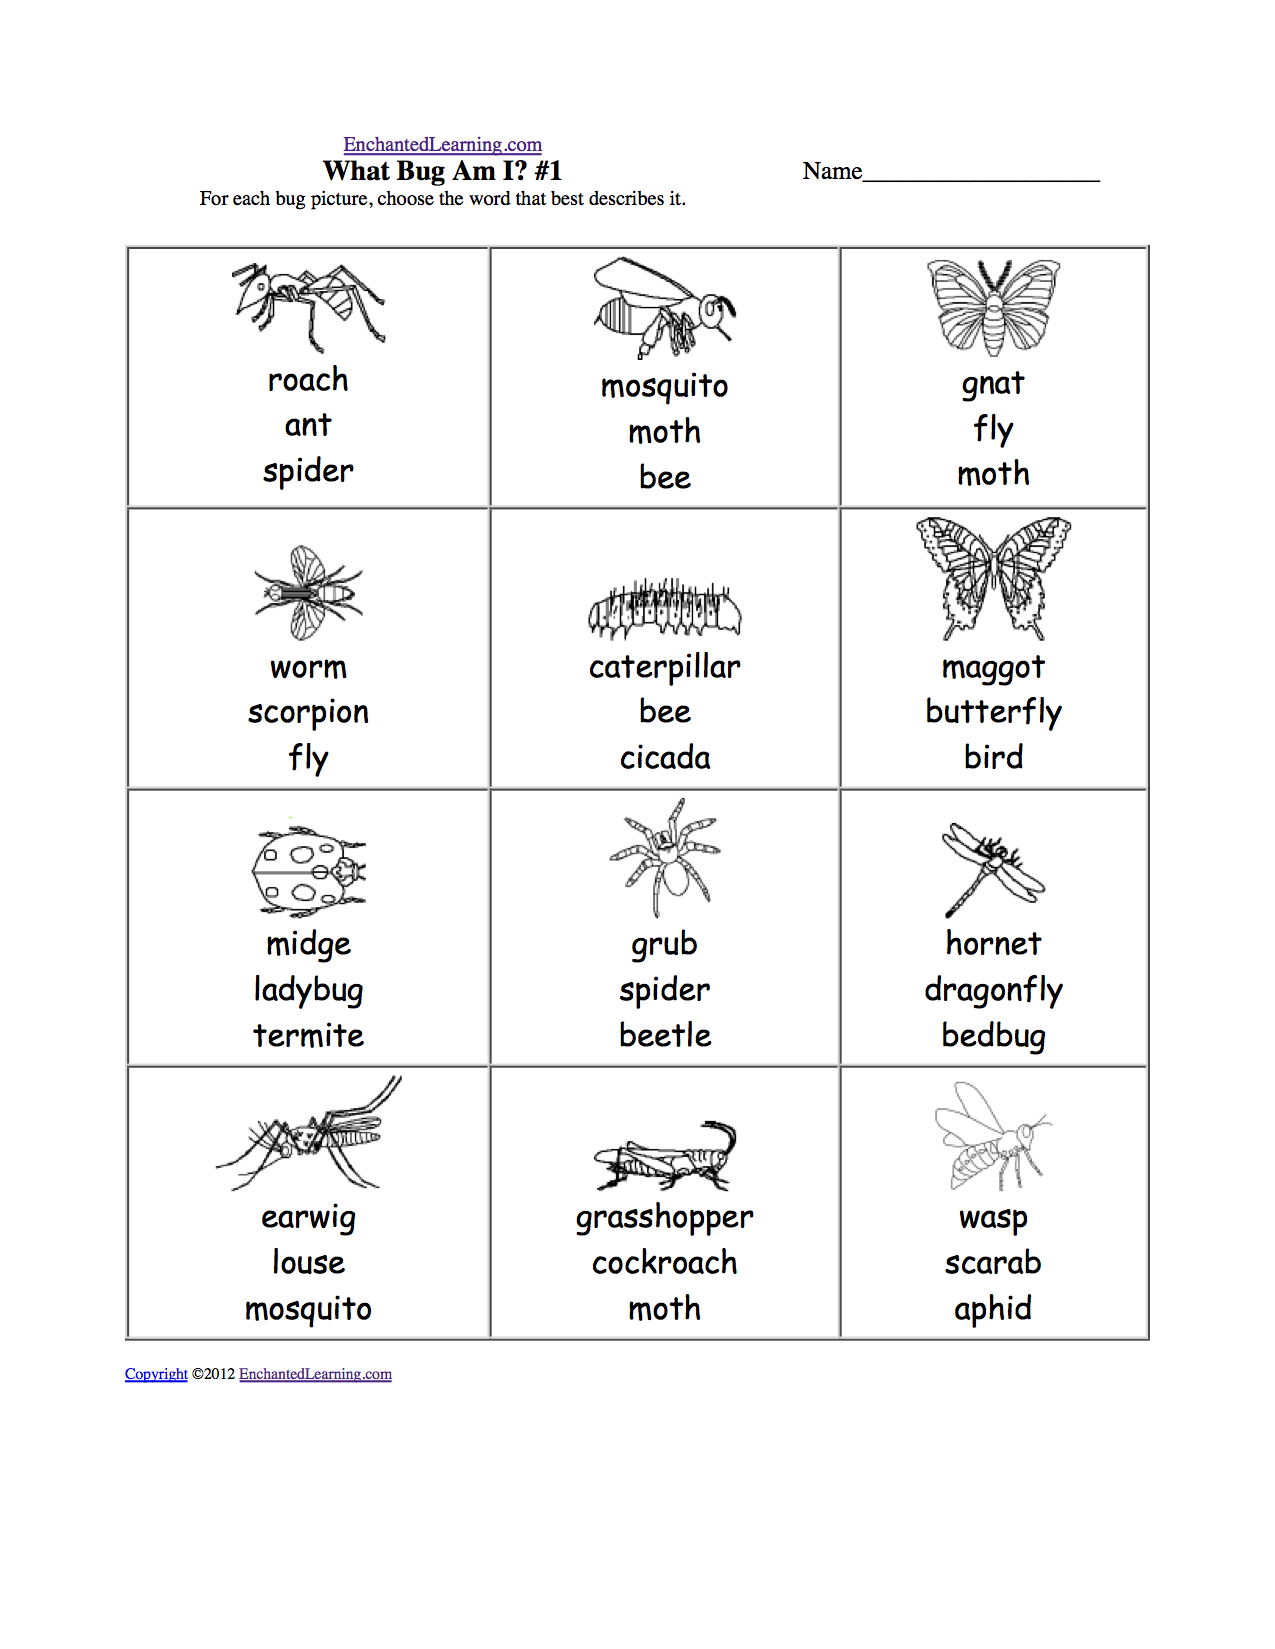 Aldiablosus  Pleasing What Am I Worksheet Printouts  Enchantedlearningcom With Fascinating Adjective Clause Worksheets Besides Solving One And Two Step Equations Worksheets Furthermore Root Word Worksheets Th Grade With Alluring Line Graph Worksheets Rd Grade Also Rd And Th Grade Math Worksheets In Addition St Grade Science Worksheets Free And Extreme Dot To Dot Free Printable Worksheets As Well As Holiday Math Worksheets Middle School Additionally Japanese Language Worksheets From Enchantedlearningcom With Aldiablosus  Fascinating What Am I Worksheet Printouts  Enchantedlearningcom With Alluring Adjective Clause Worksheets Besides Solving One And Two Step Equations Worksheets Furthermore Root Word Worksheets Th Grade And Pleasing Line Graph Worksheets Rd Grade Also Rd And Th Grade Math Worksheets In Addition St Grade Science Worksheets Free From Enchantedlearningcom